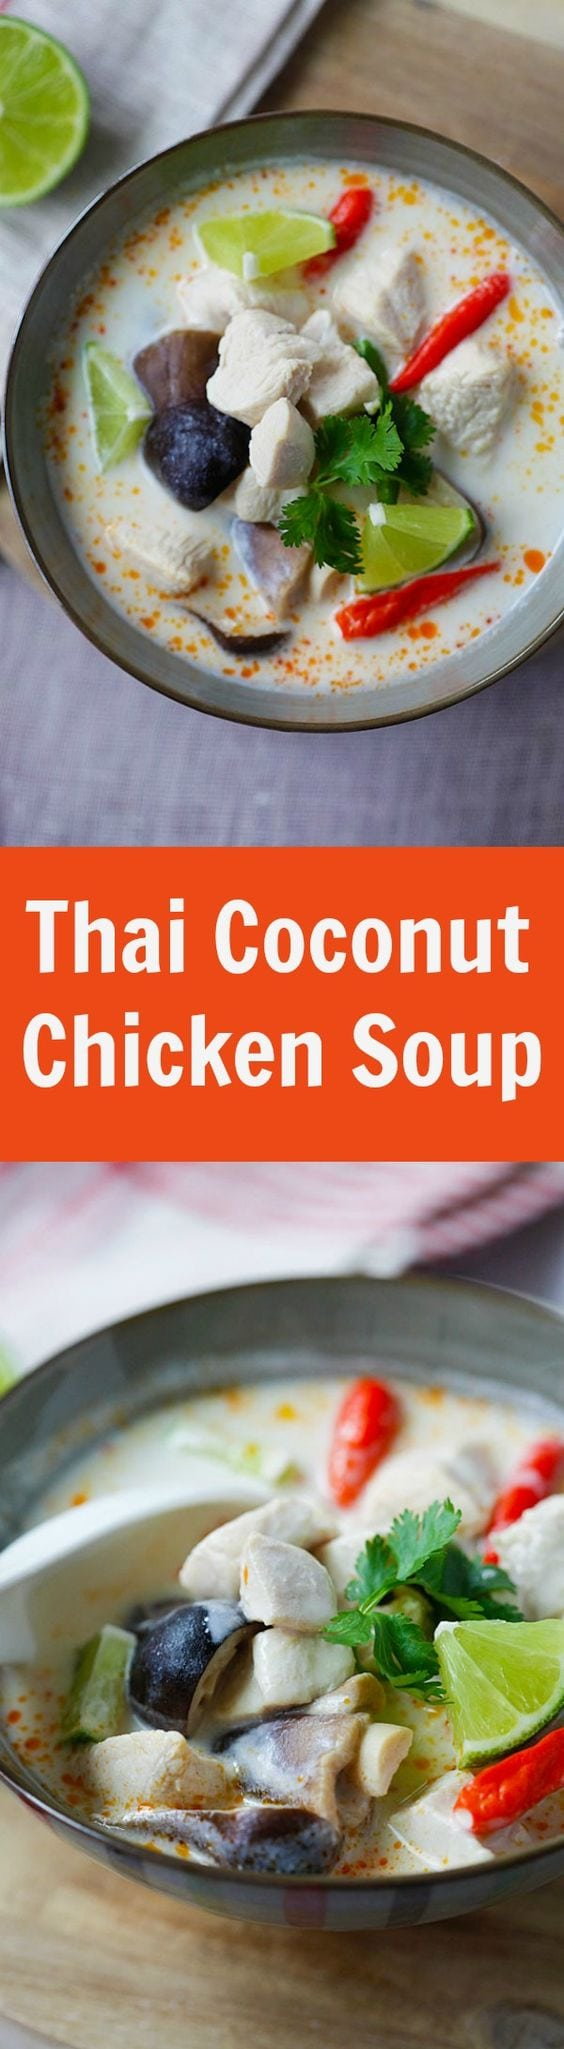 Tom Kha Gai hai - BEST and EASIEST recipe for Thai coconut chicken soup with chicken, mushroom and coconut milk. 20 mins and better than restauarant's | rasamalaysia.com